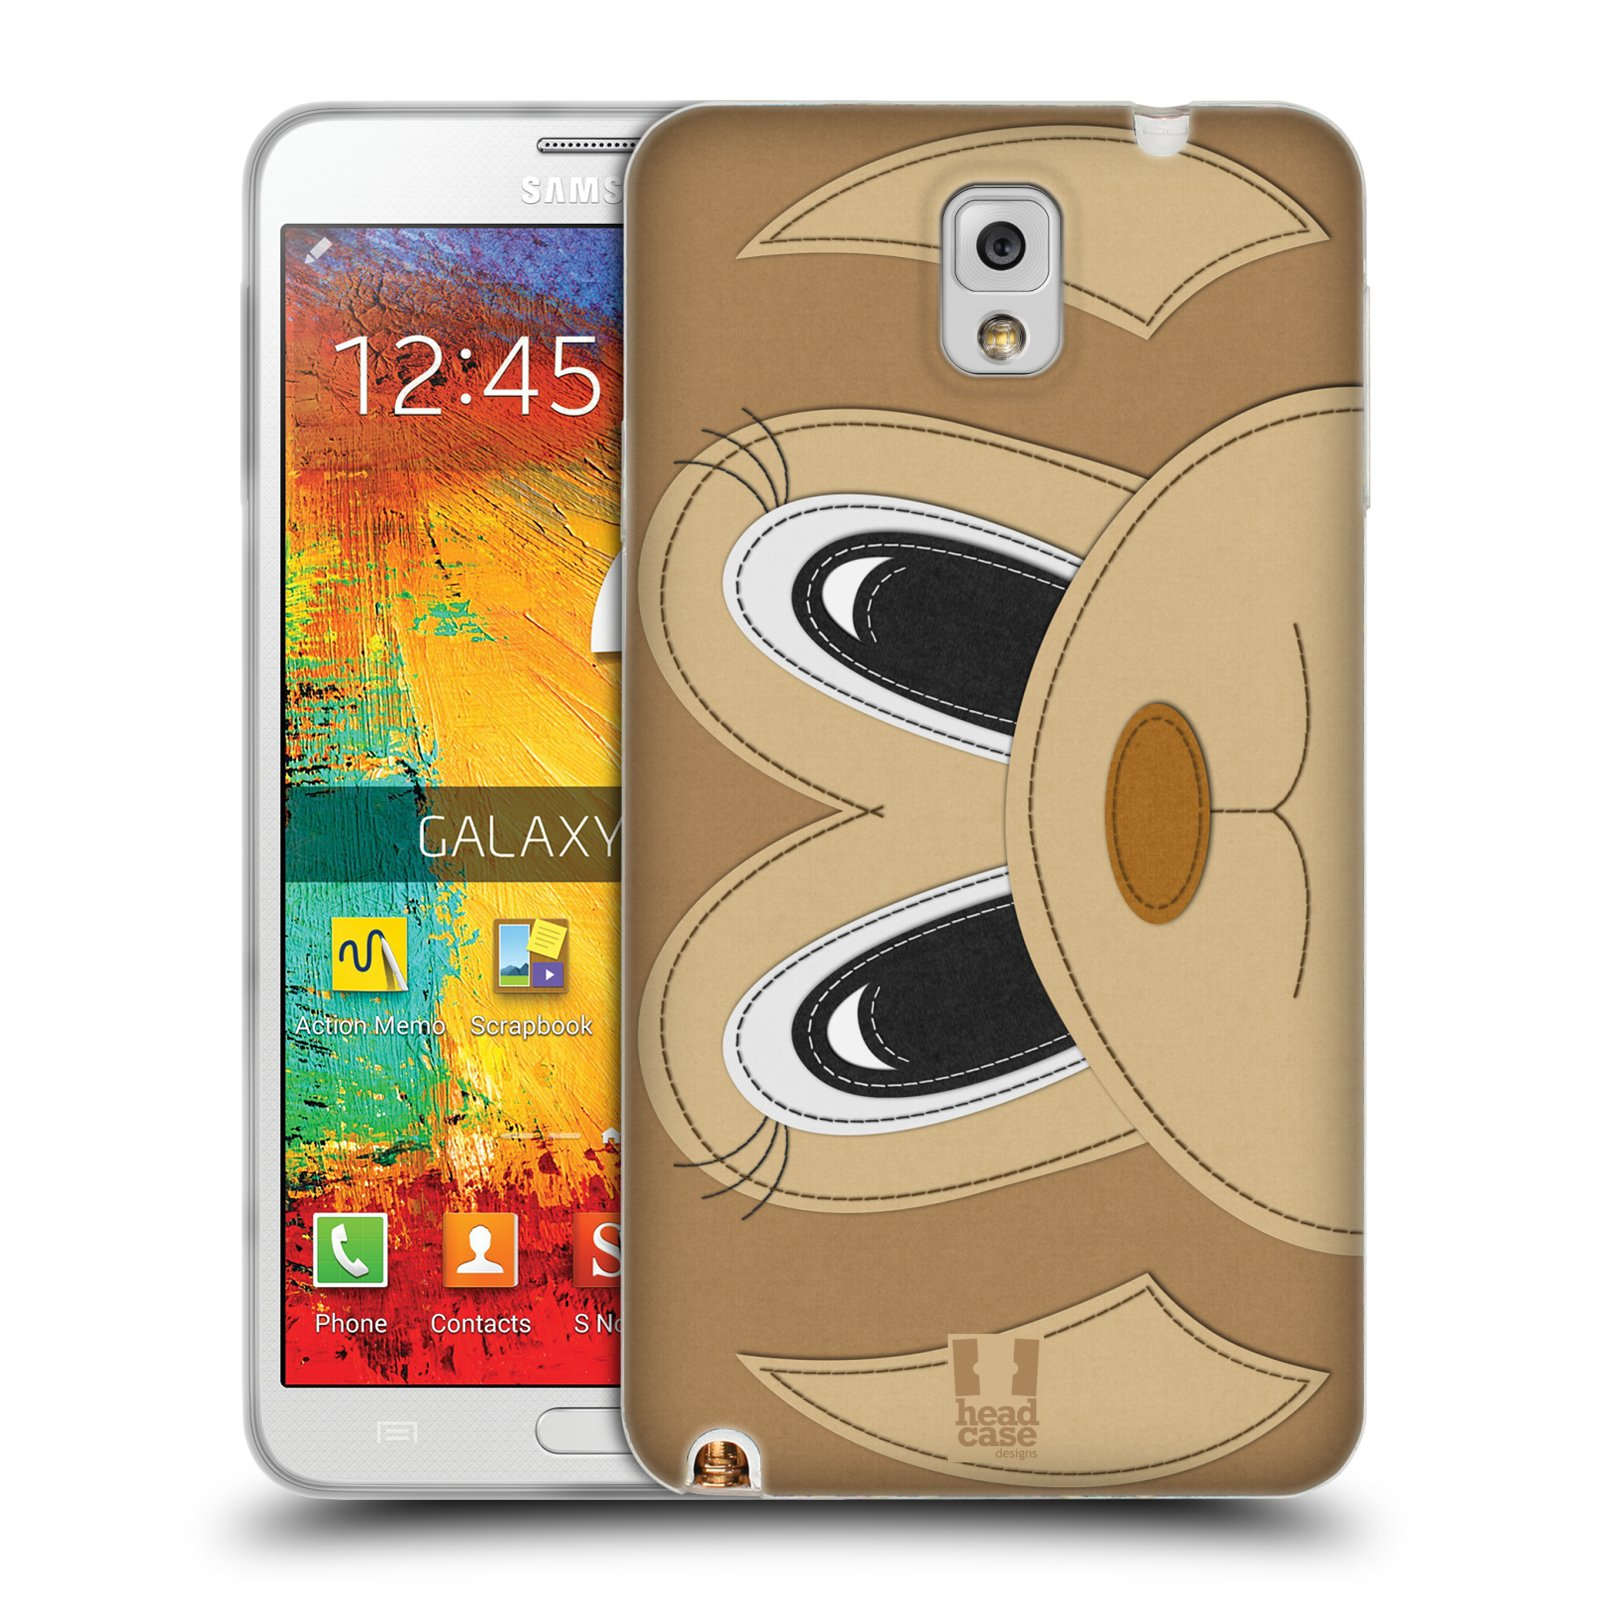 HEAD CASE DESIGNS ANIMAL PATCHES SERIES 2 SOFT GEL CASE FOR SAMSUNG PHONES 2